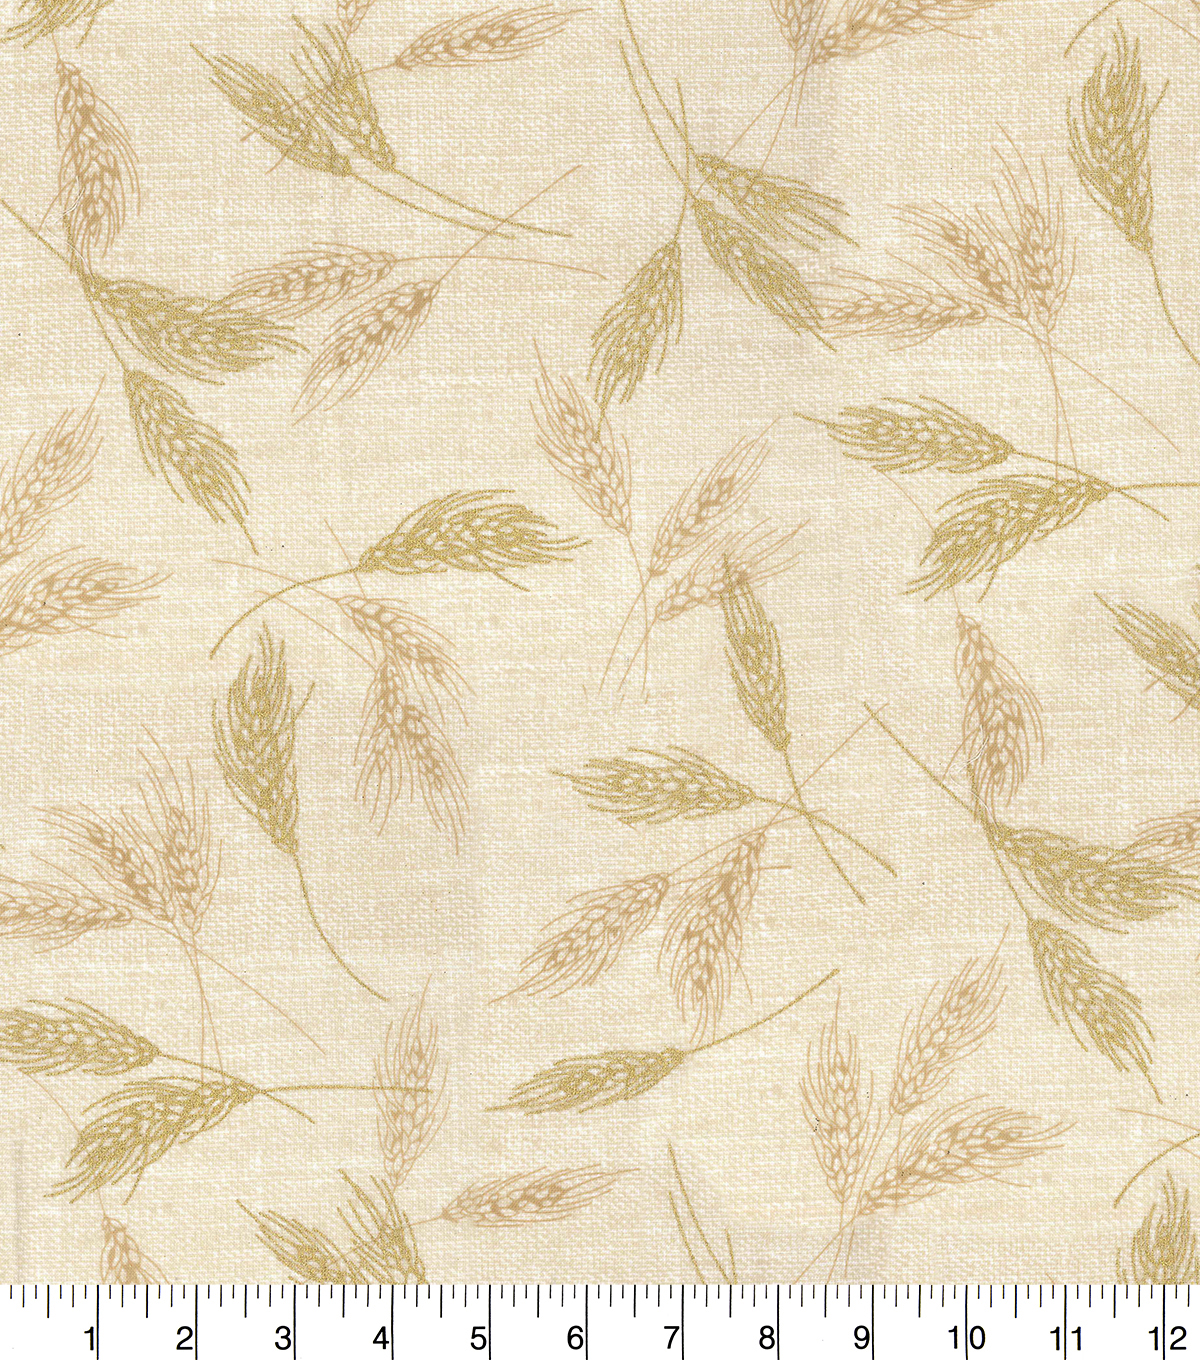 Fall Harvest Cotton Fabric-Cream Tossed Glitter Wheat